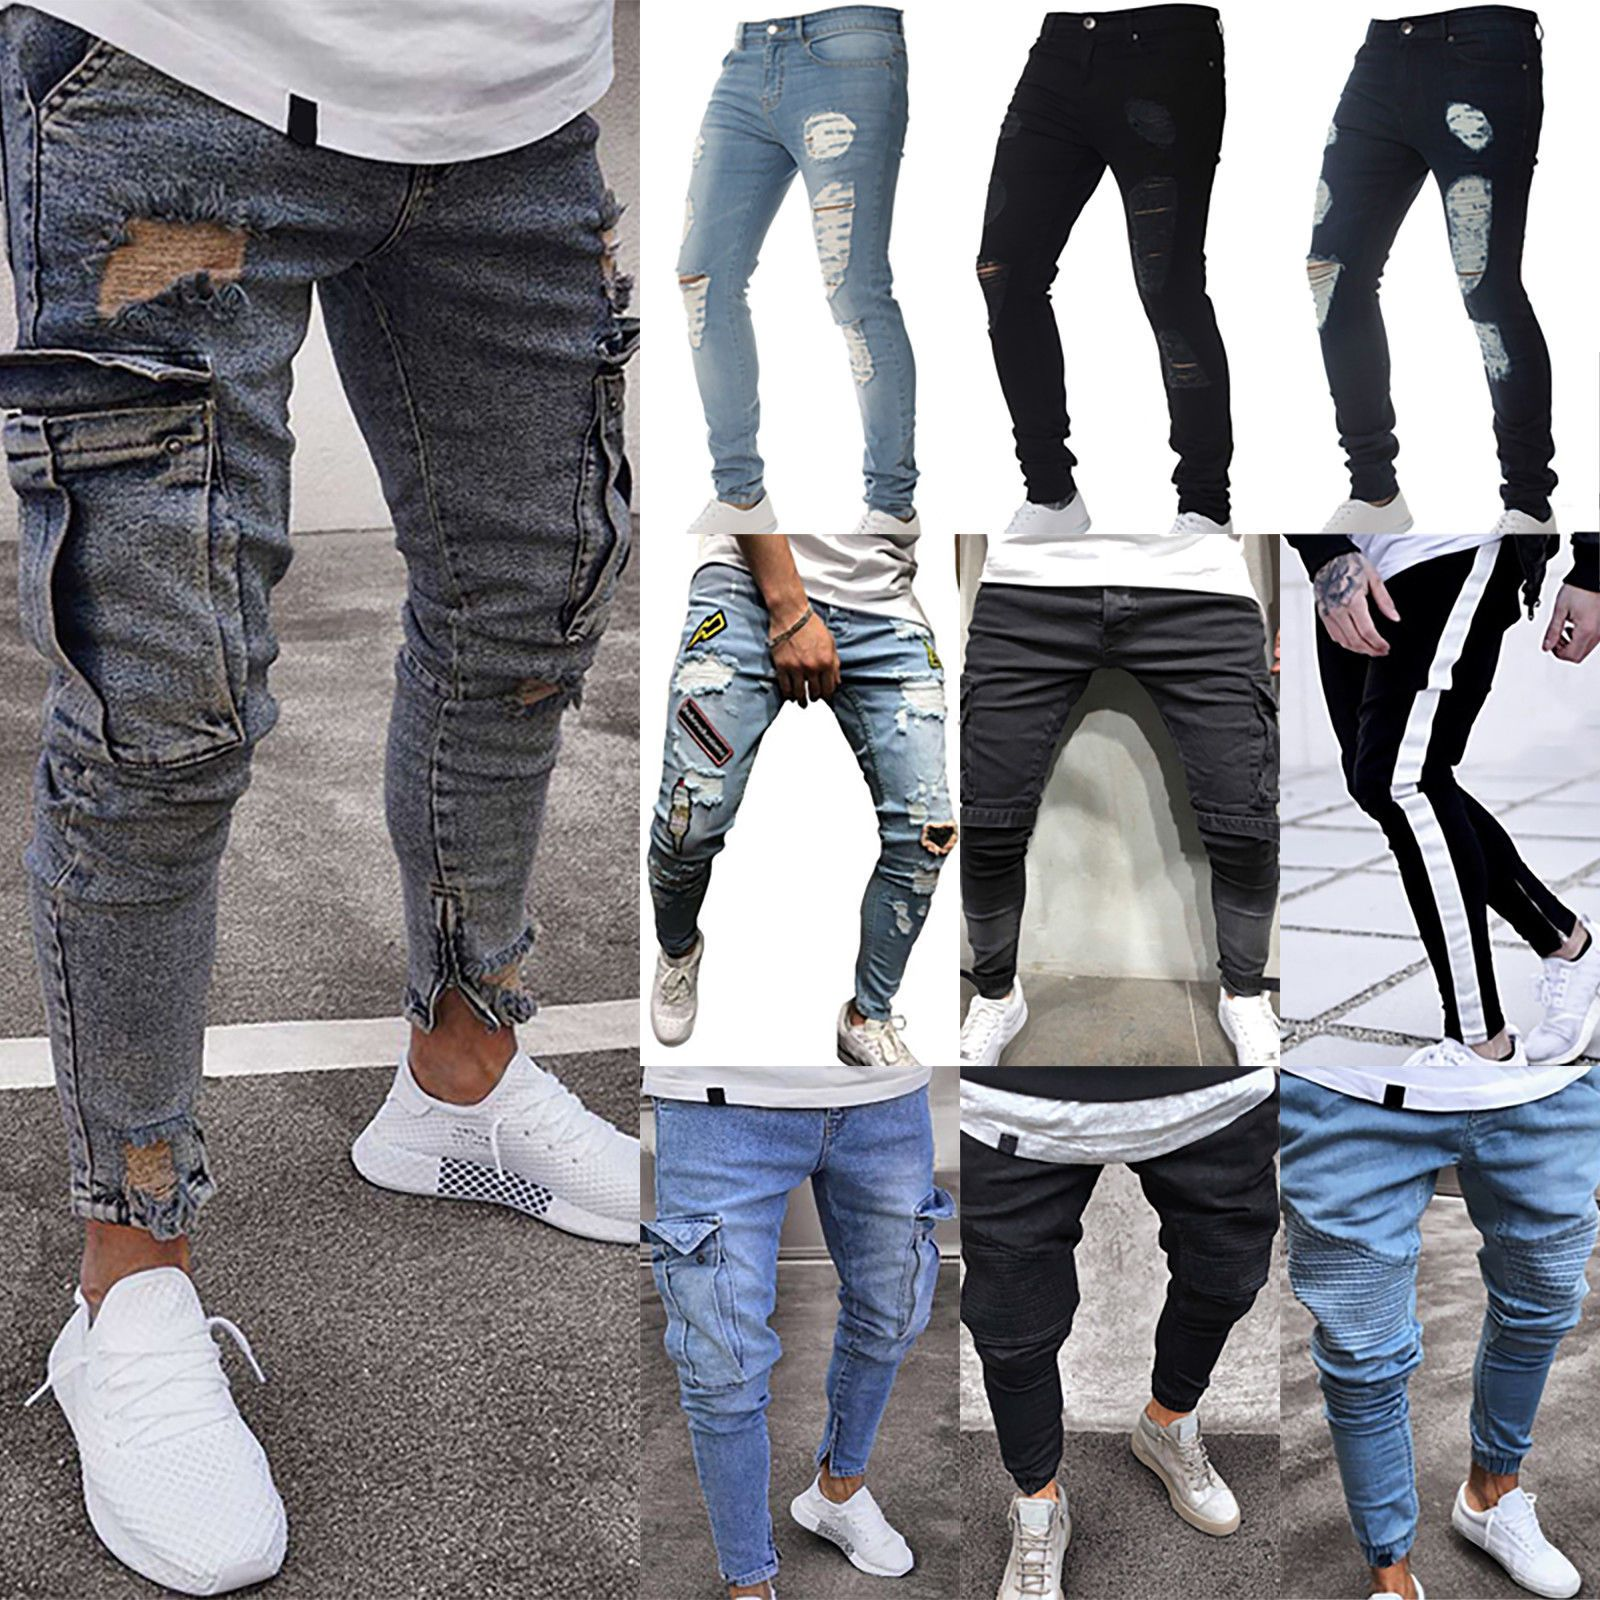 Pants S Xl Men Ripped Biker Skinny Jeans Frayed Destroyed Trousers Casual